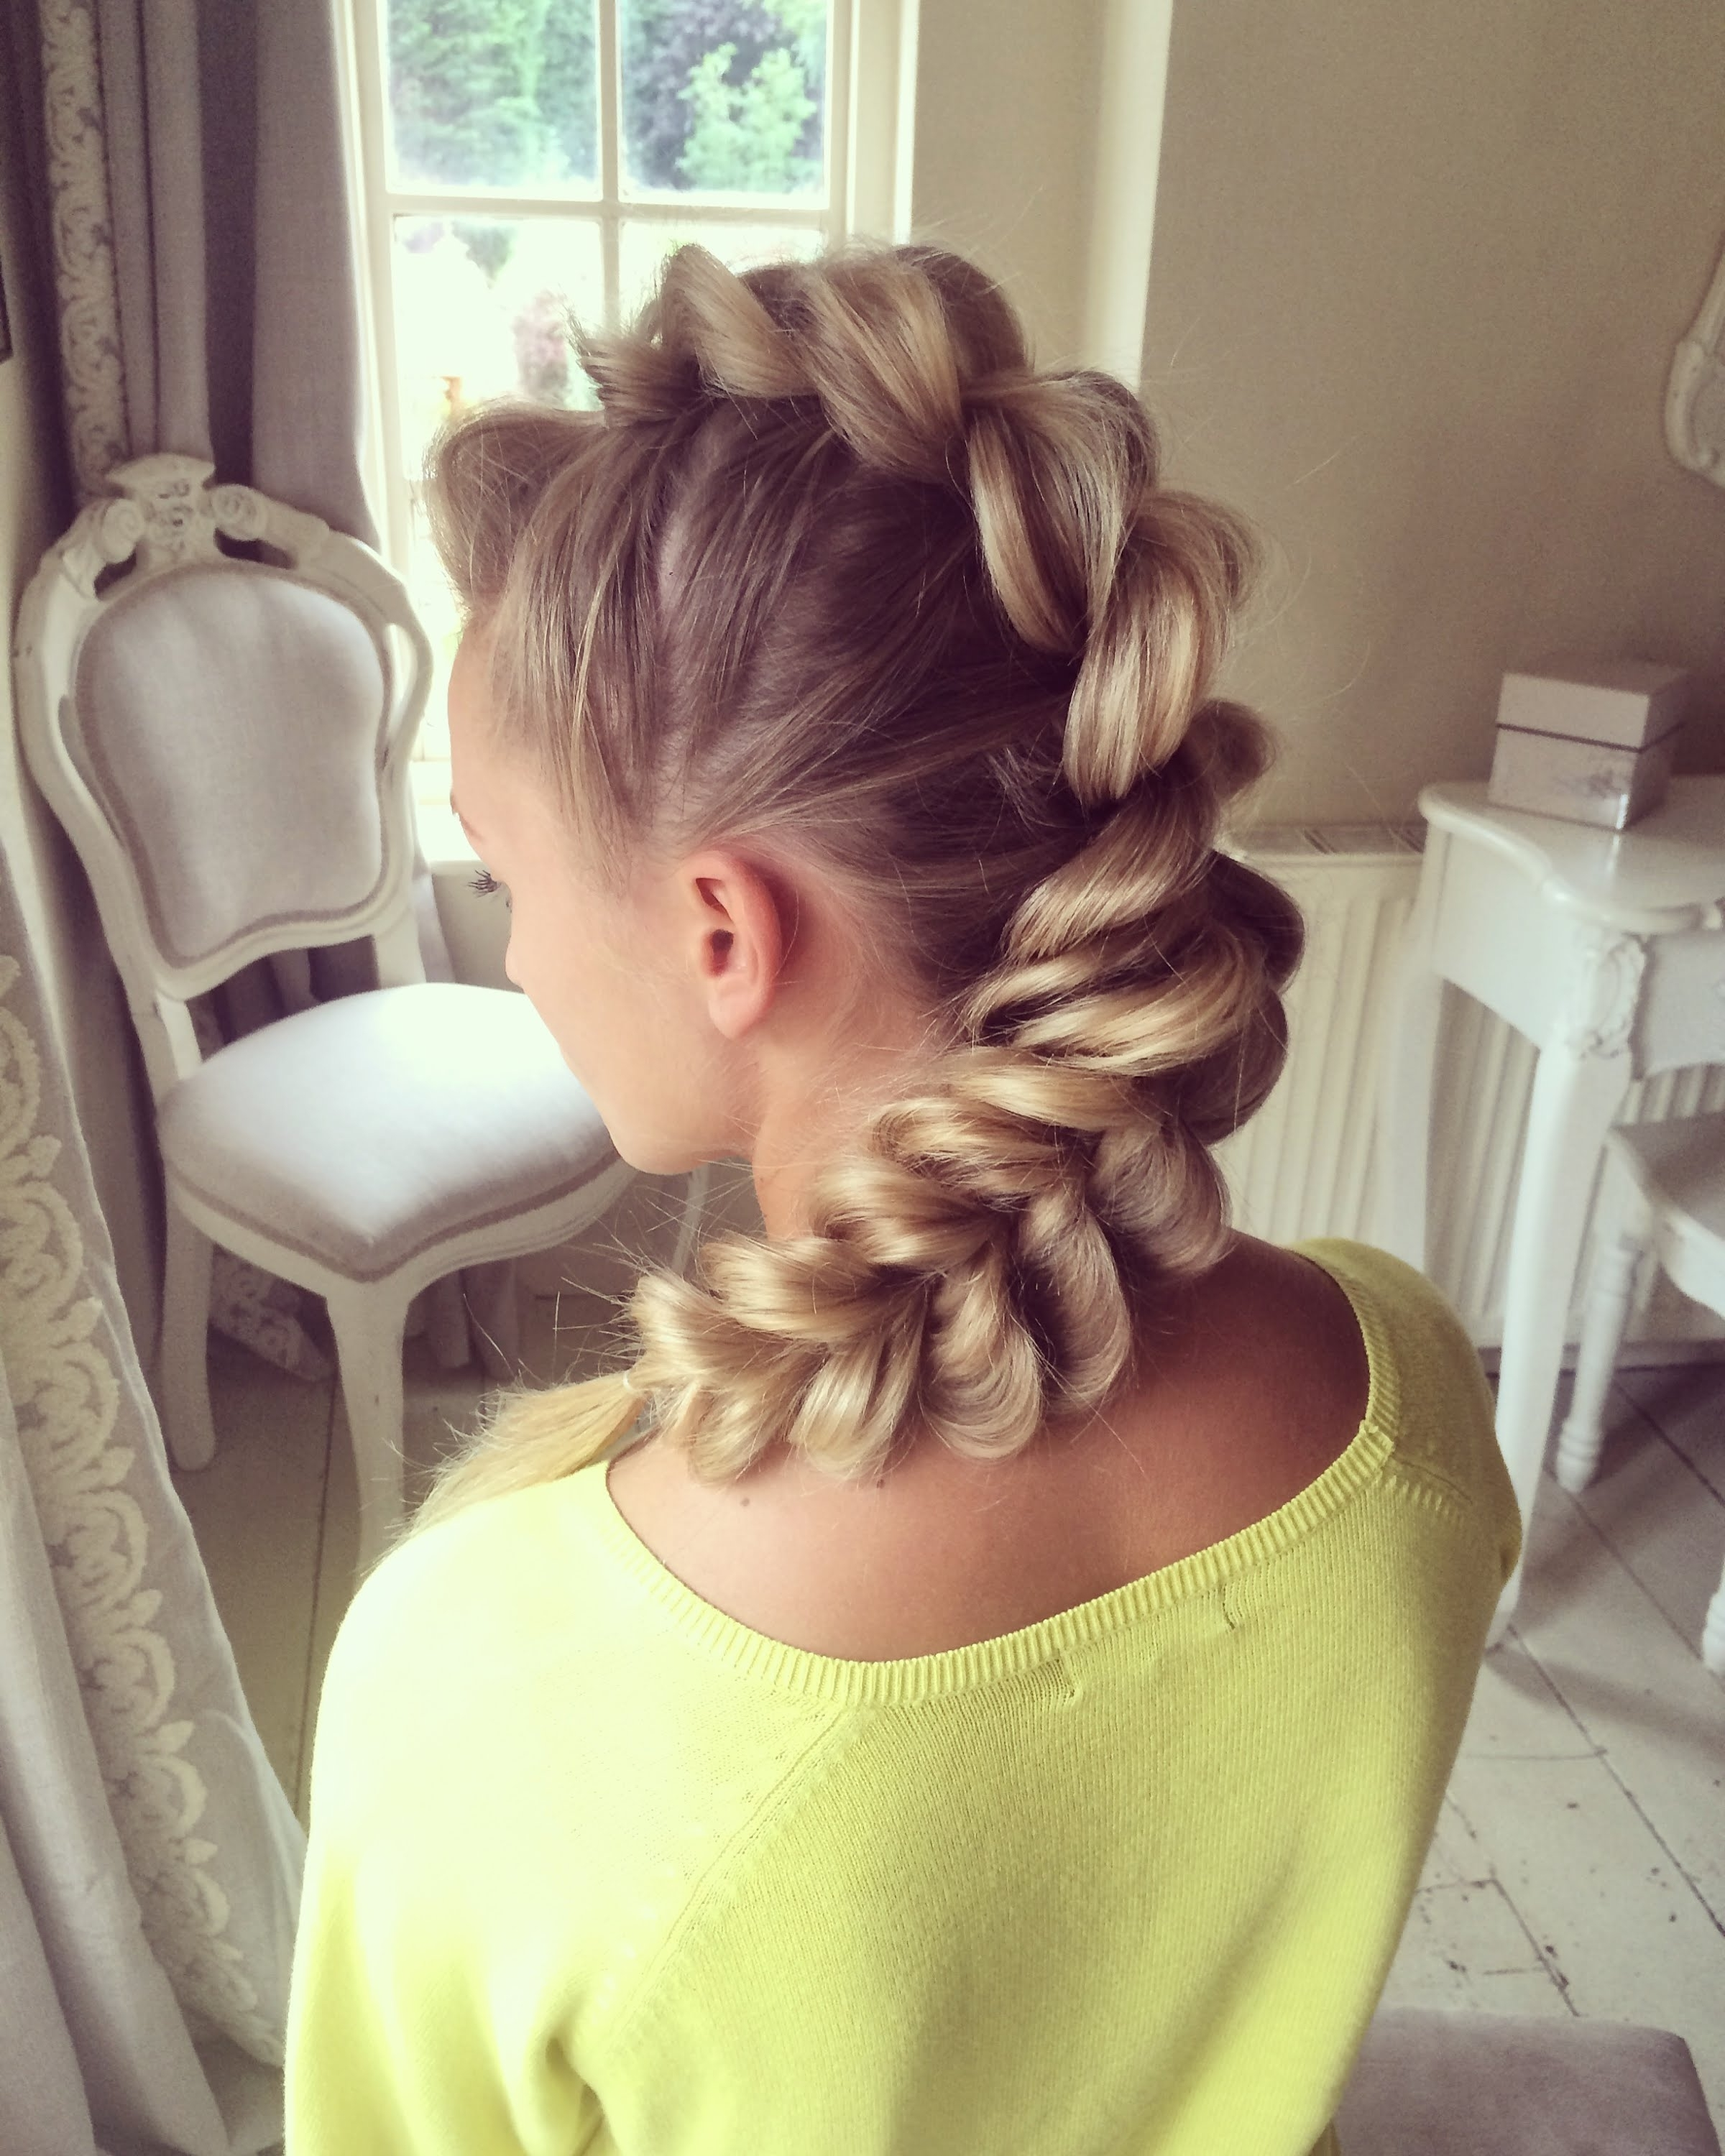 Newest Mohawk Braid And Ponytail Hairstyles Inside 30 Braided Mohawk Styles That Turn Heads (View 16 of 20)